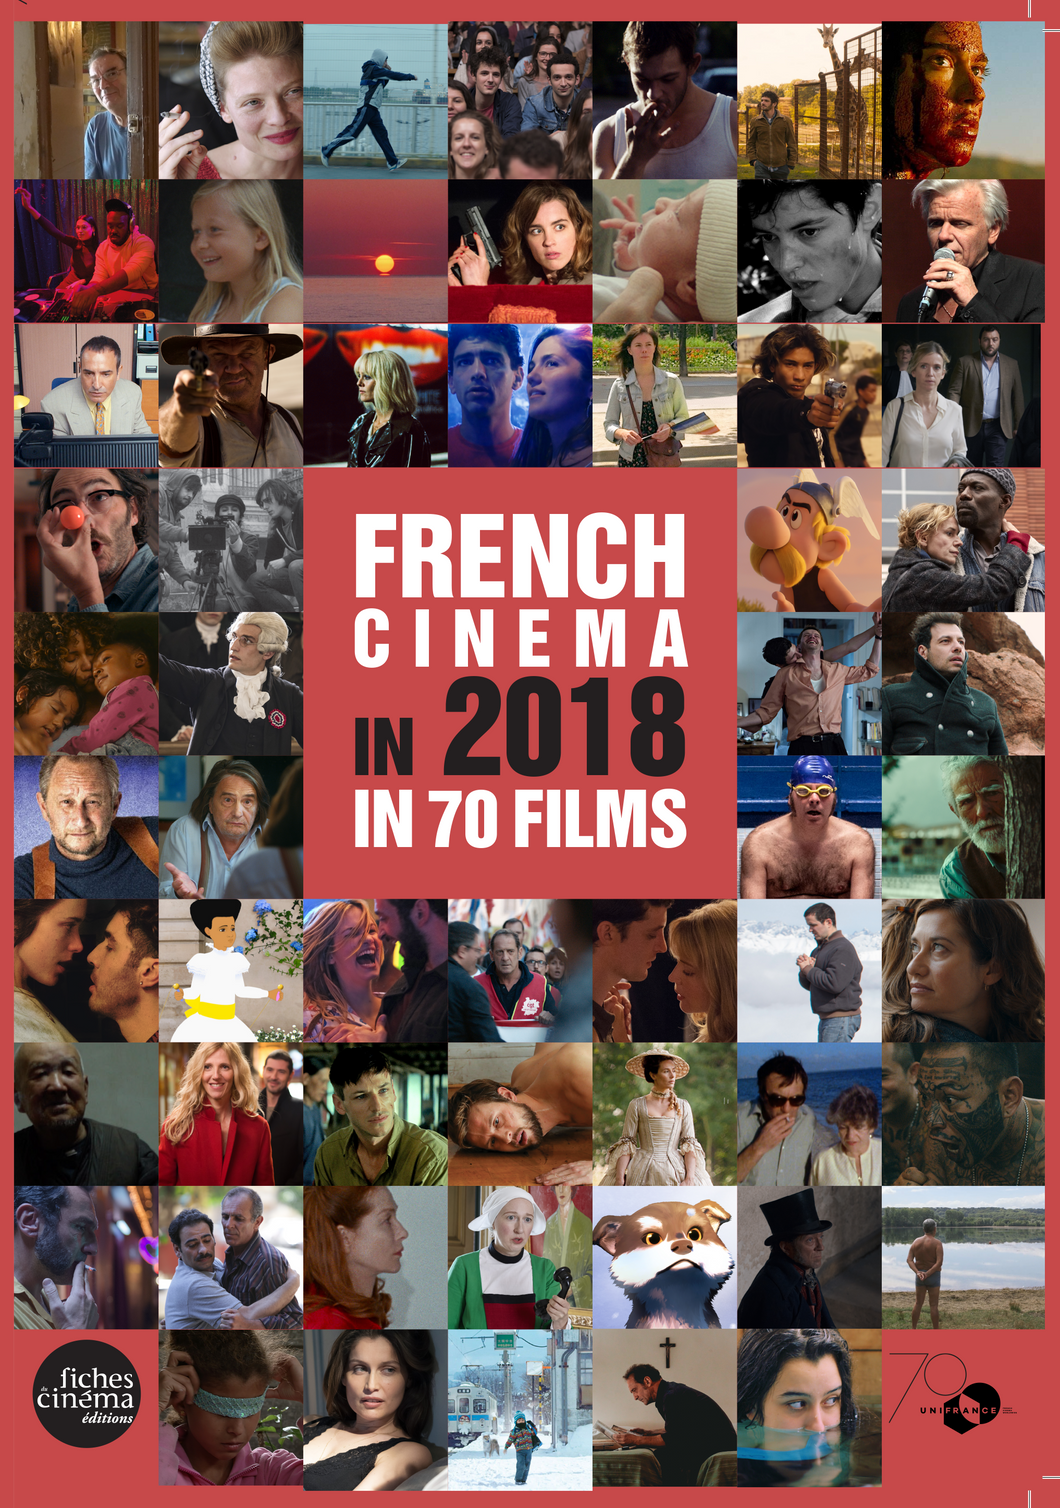 Book French Cinema in 2018 in 70 films frontcover